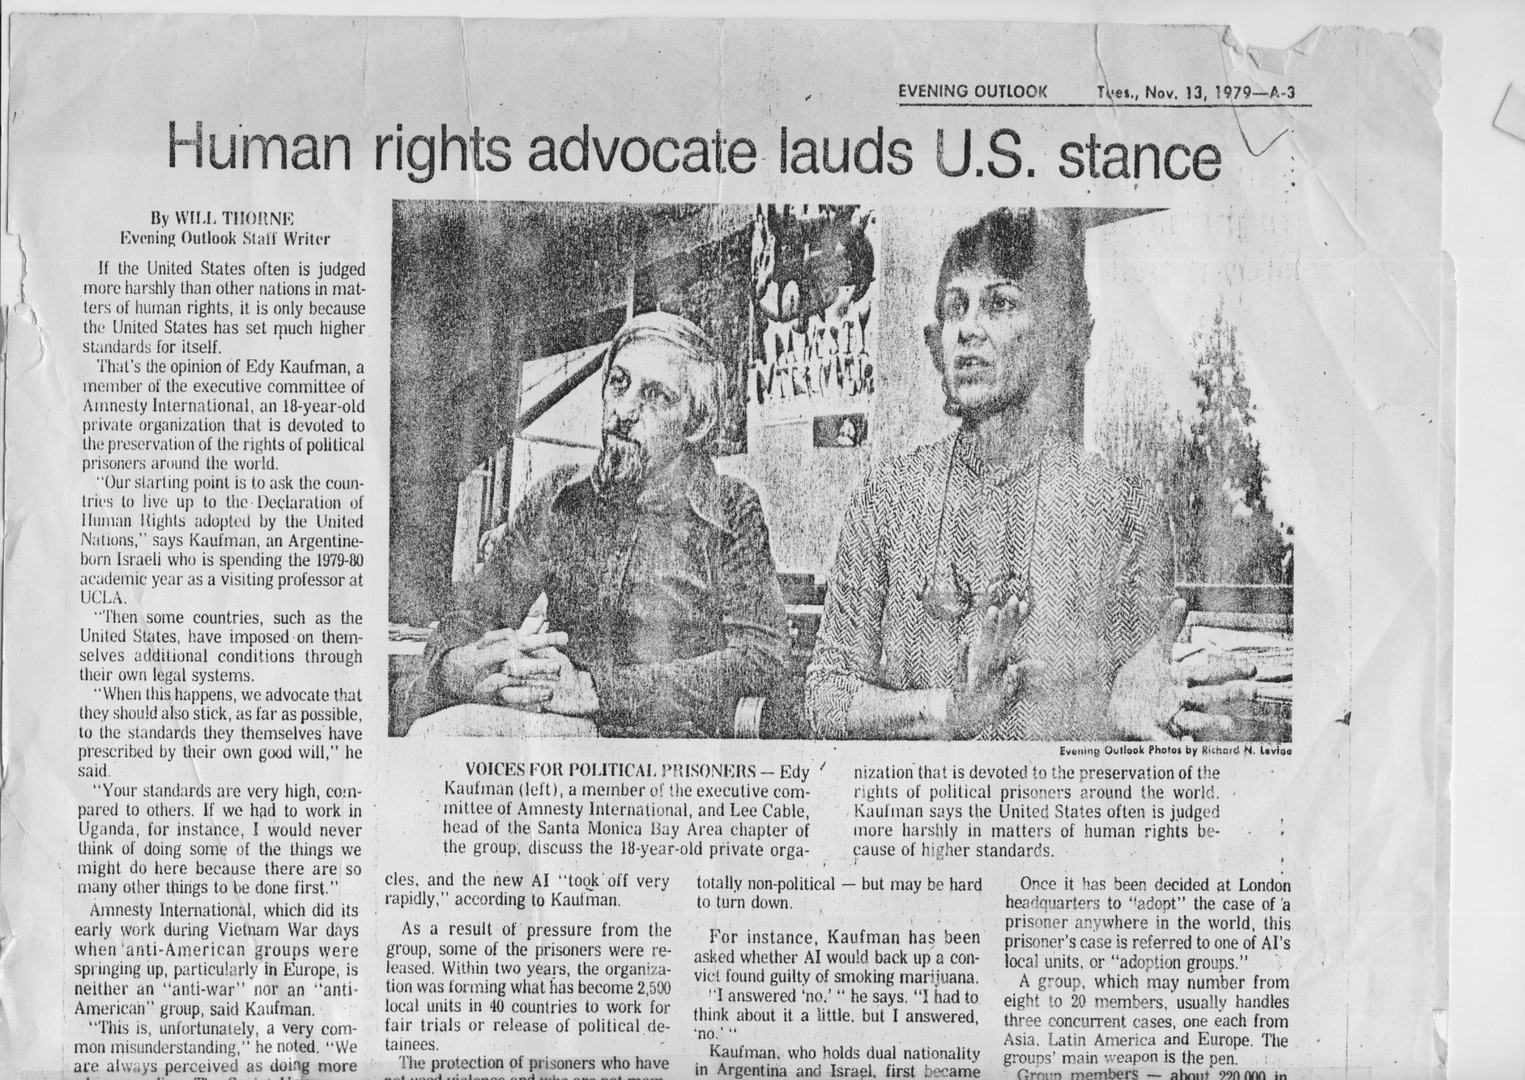 human rights advocate lauds U.S.  stance